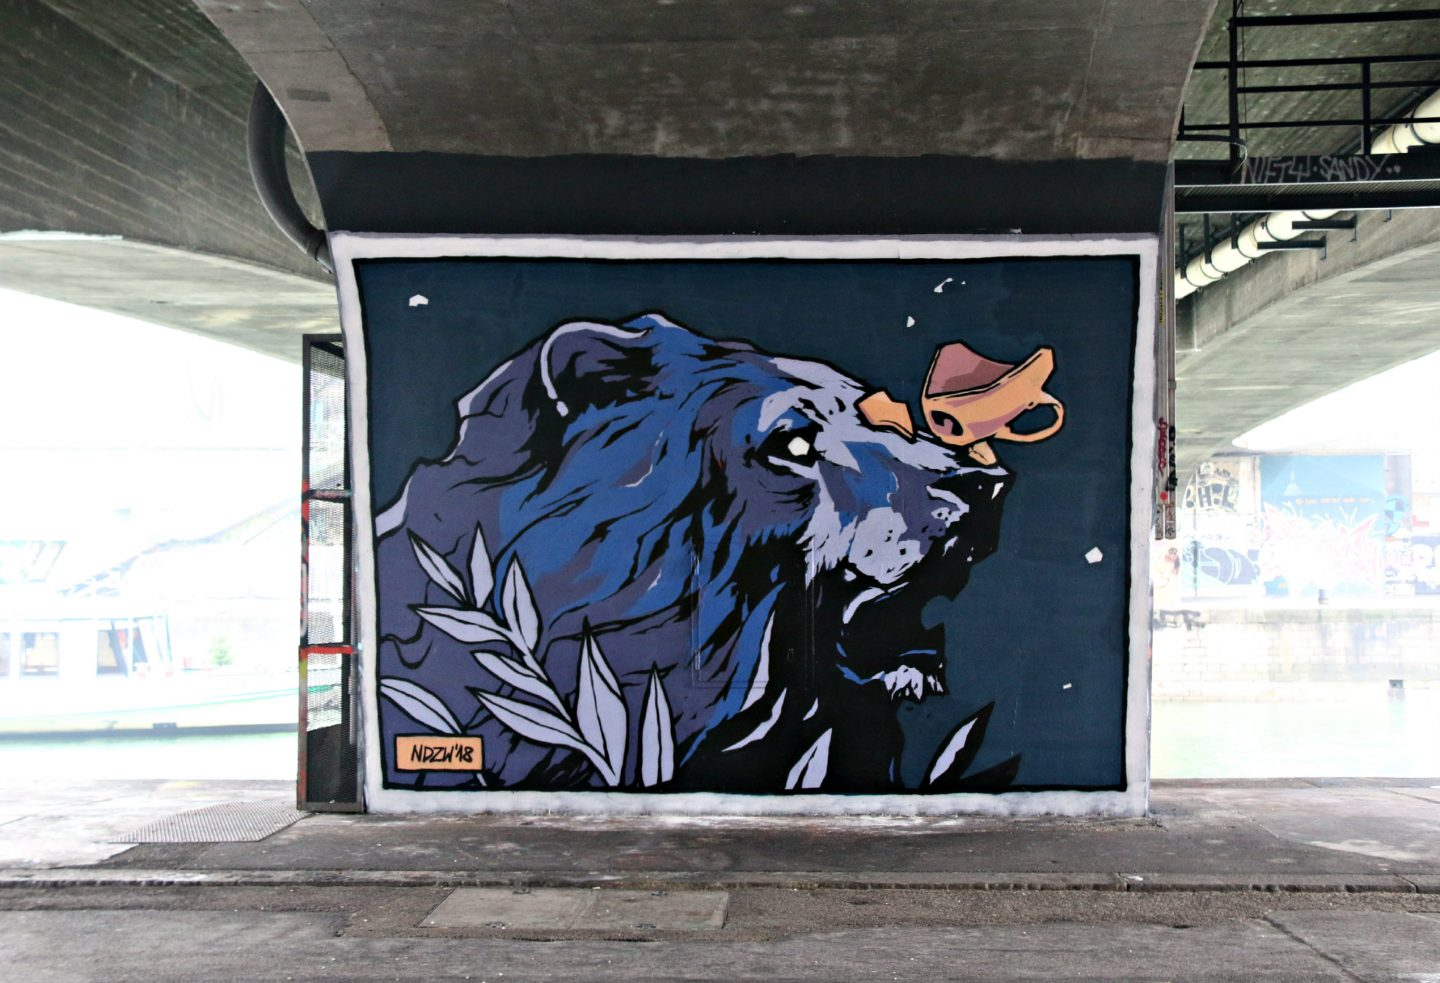 Vienna street art by the canal 12